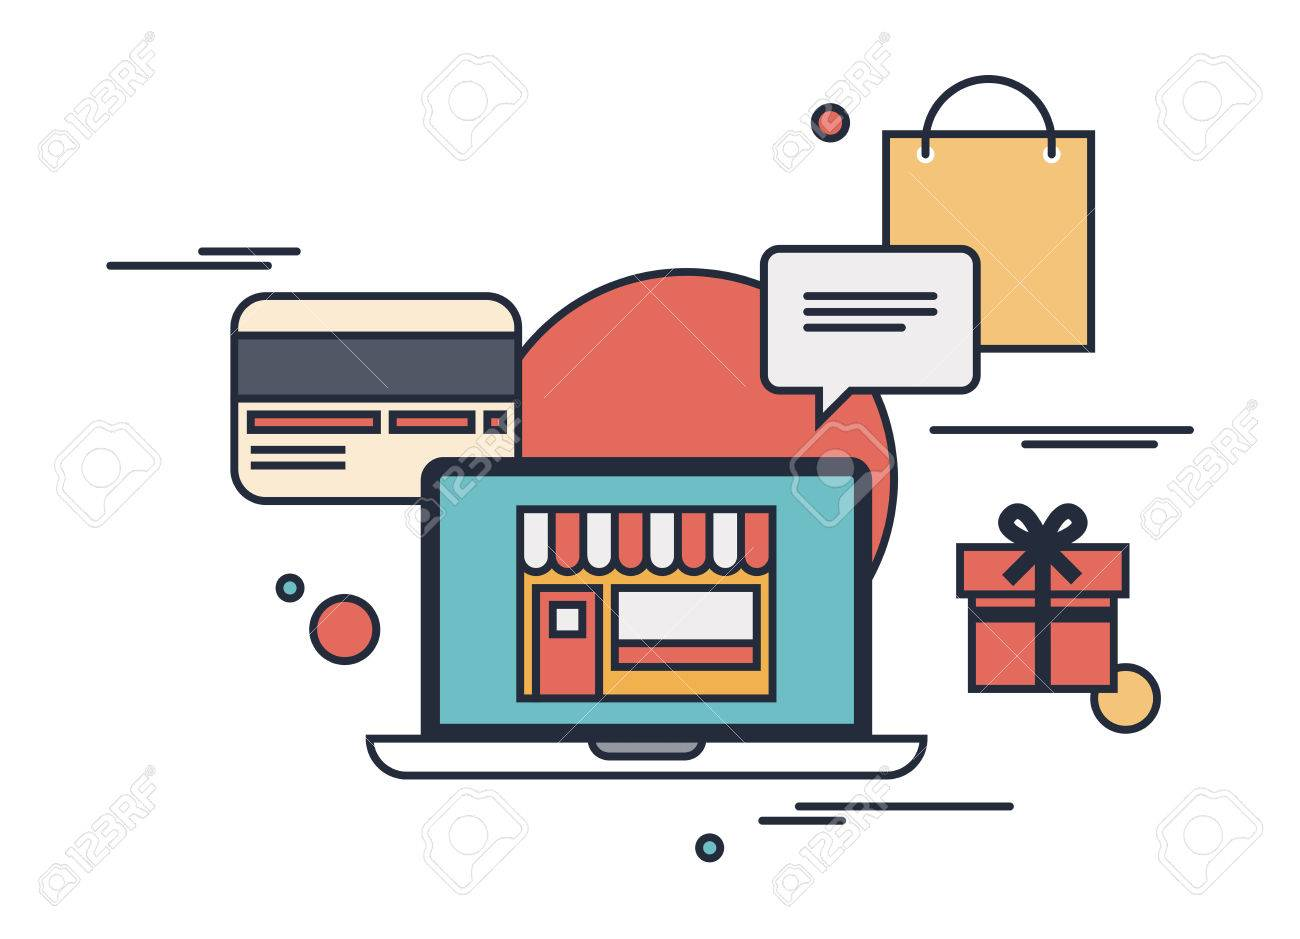 Flat design modern vector outline illustration concept of purchasing product via internet, online shopping communication and purchase with credit card  Isolated on white background Stock Vector - 23864960